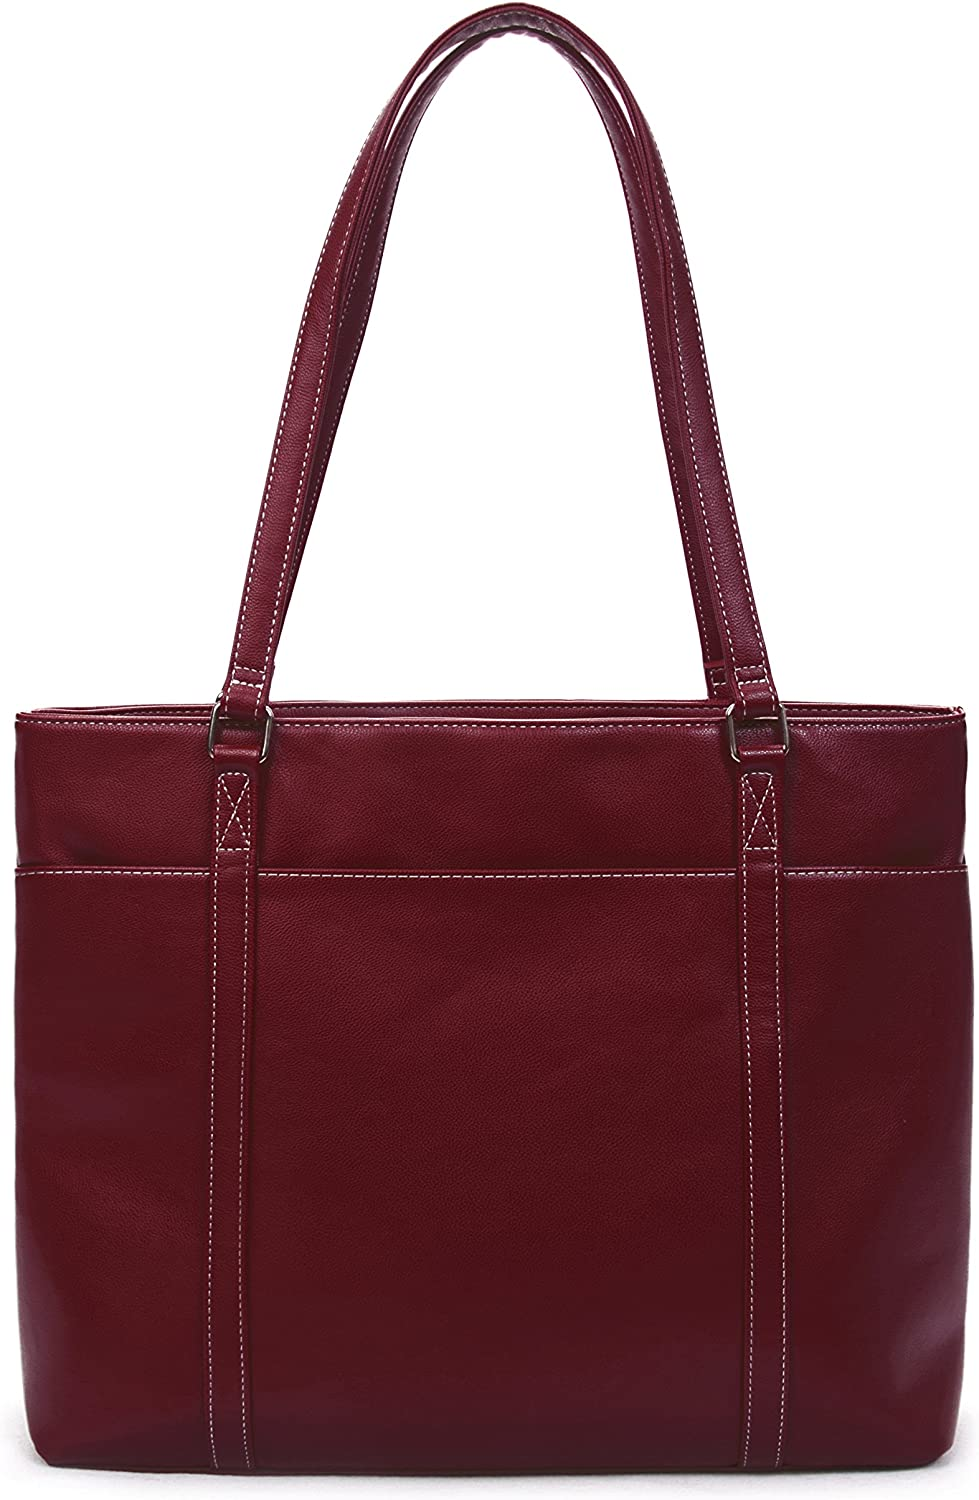 Overbrooke Classic Laptop Tote Bag - Vegan Leather Womens Shoulder Bag for Laptops up to 15.6 Inches